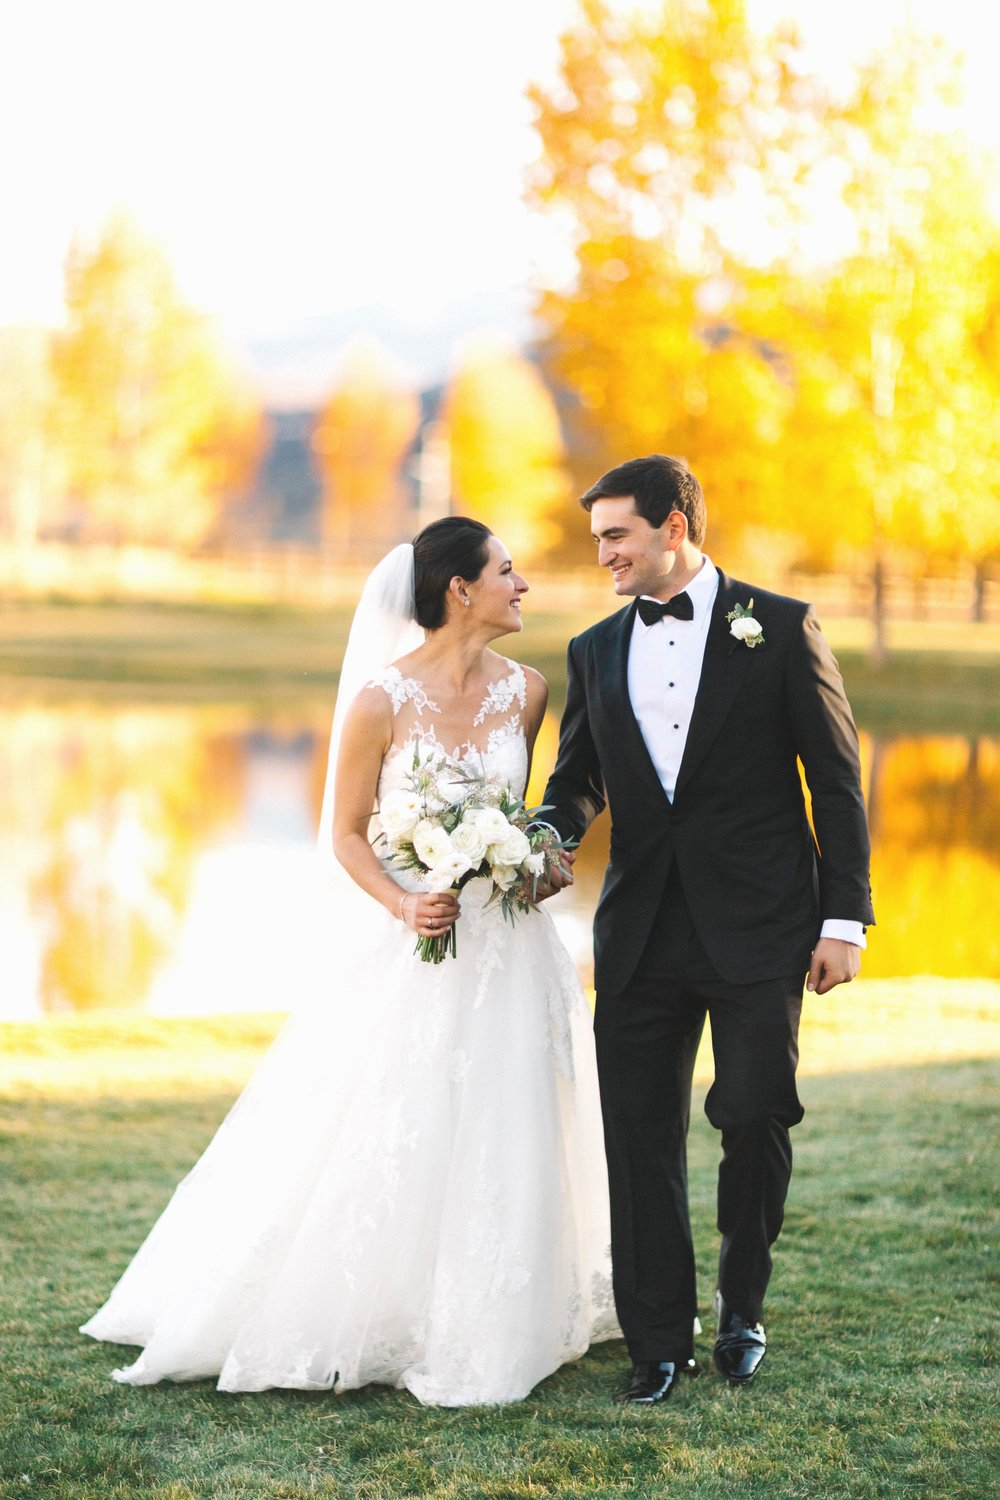 Cat Mayer | Bride and Groom at Chaparral Ranch Destination Wedding | Aspen, Colorado